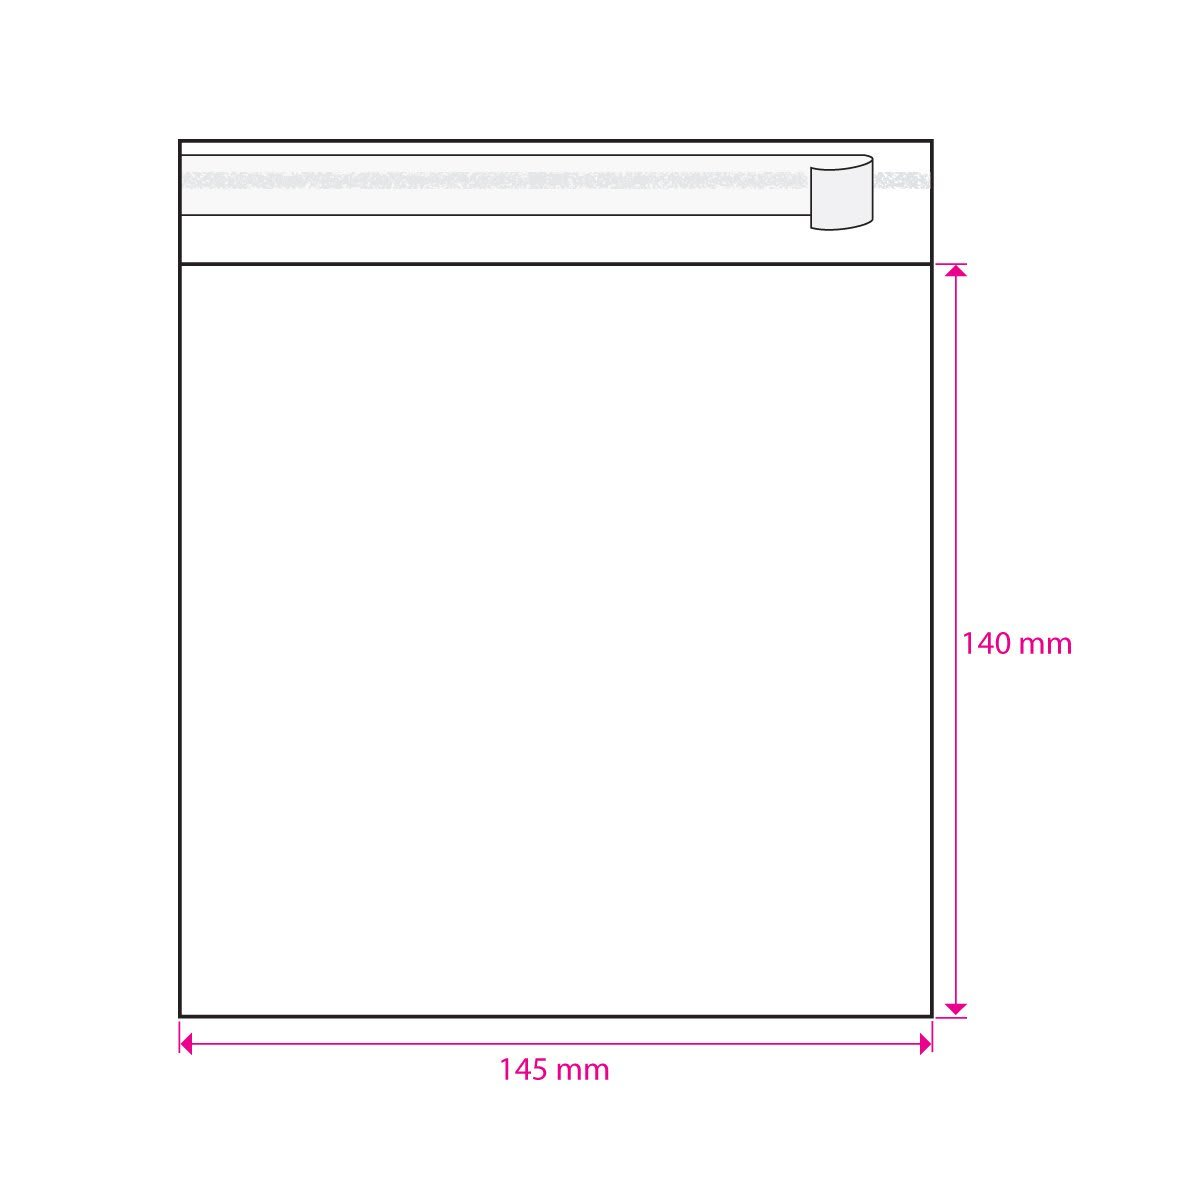 CLEAR CELLO BAGS to fit: 140 mm Square (SELF ADHESIVE)